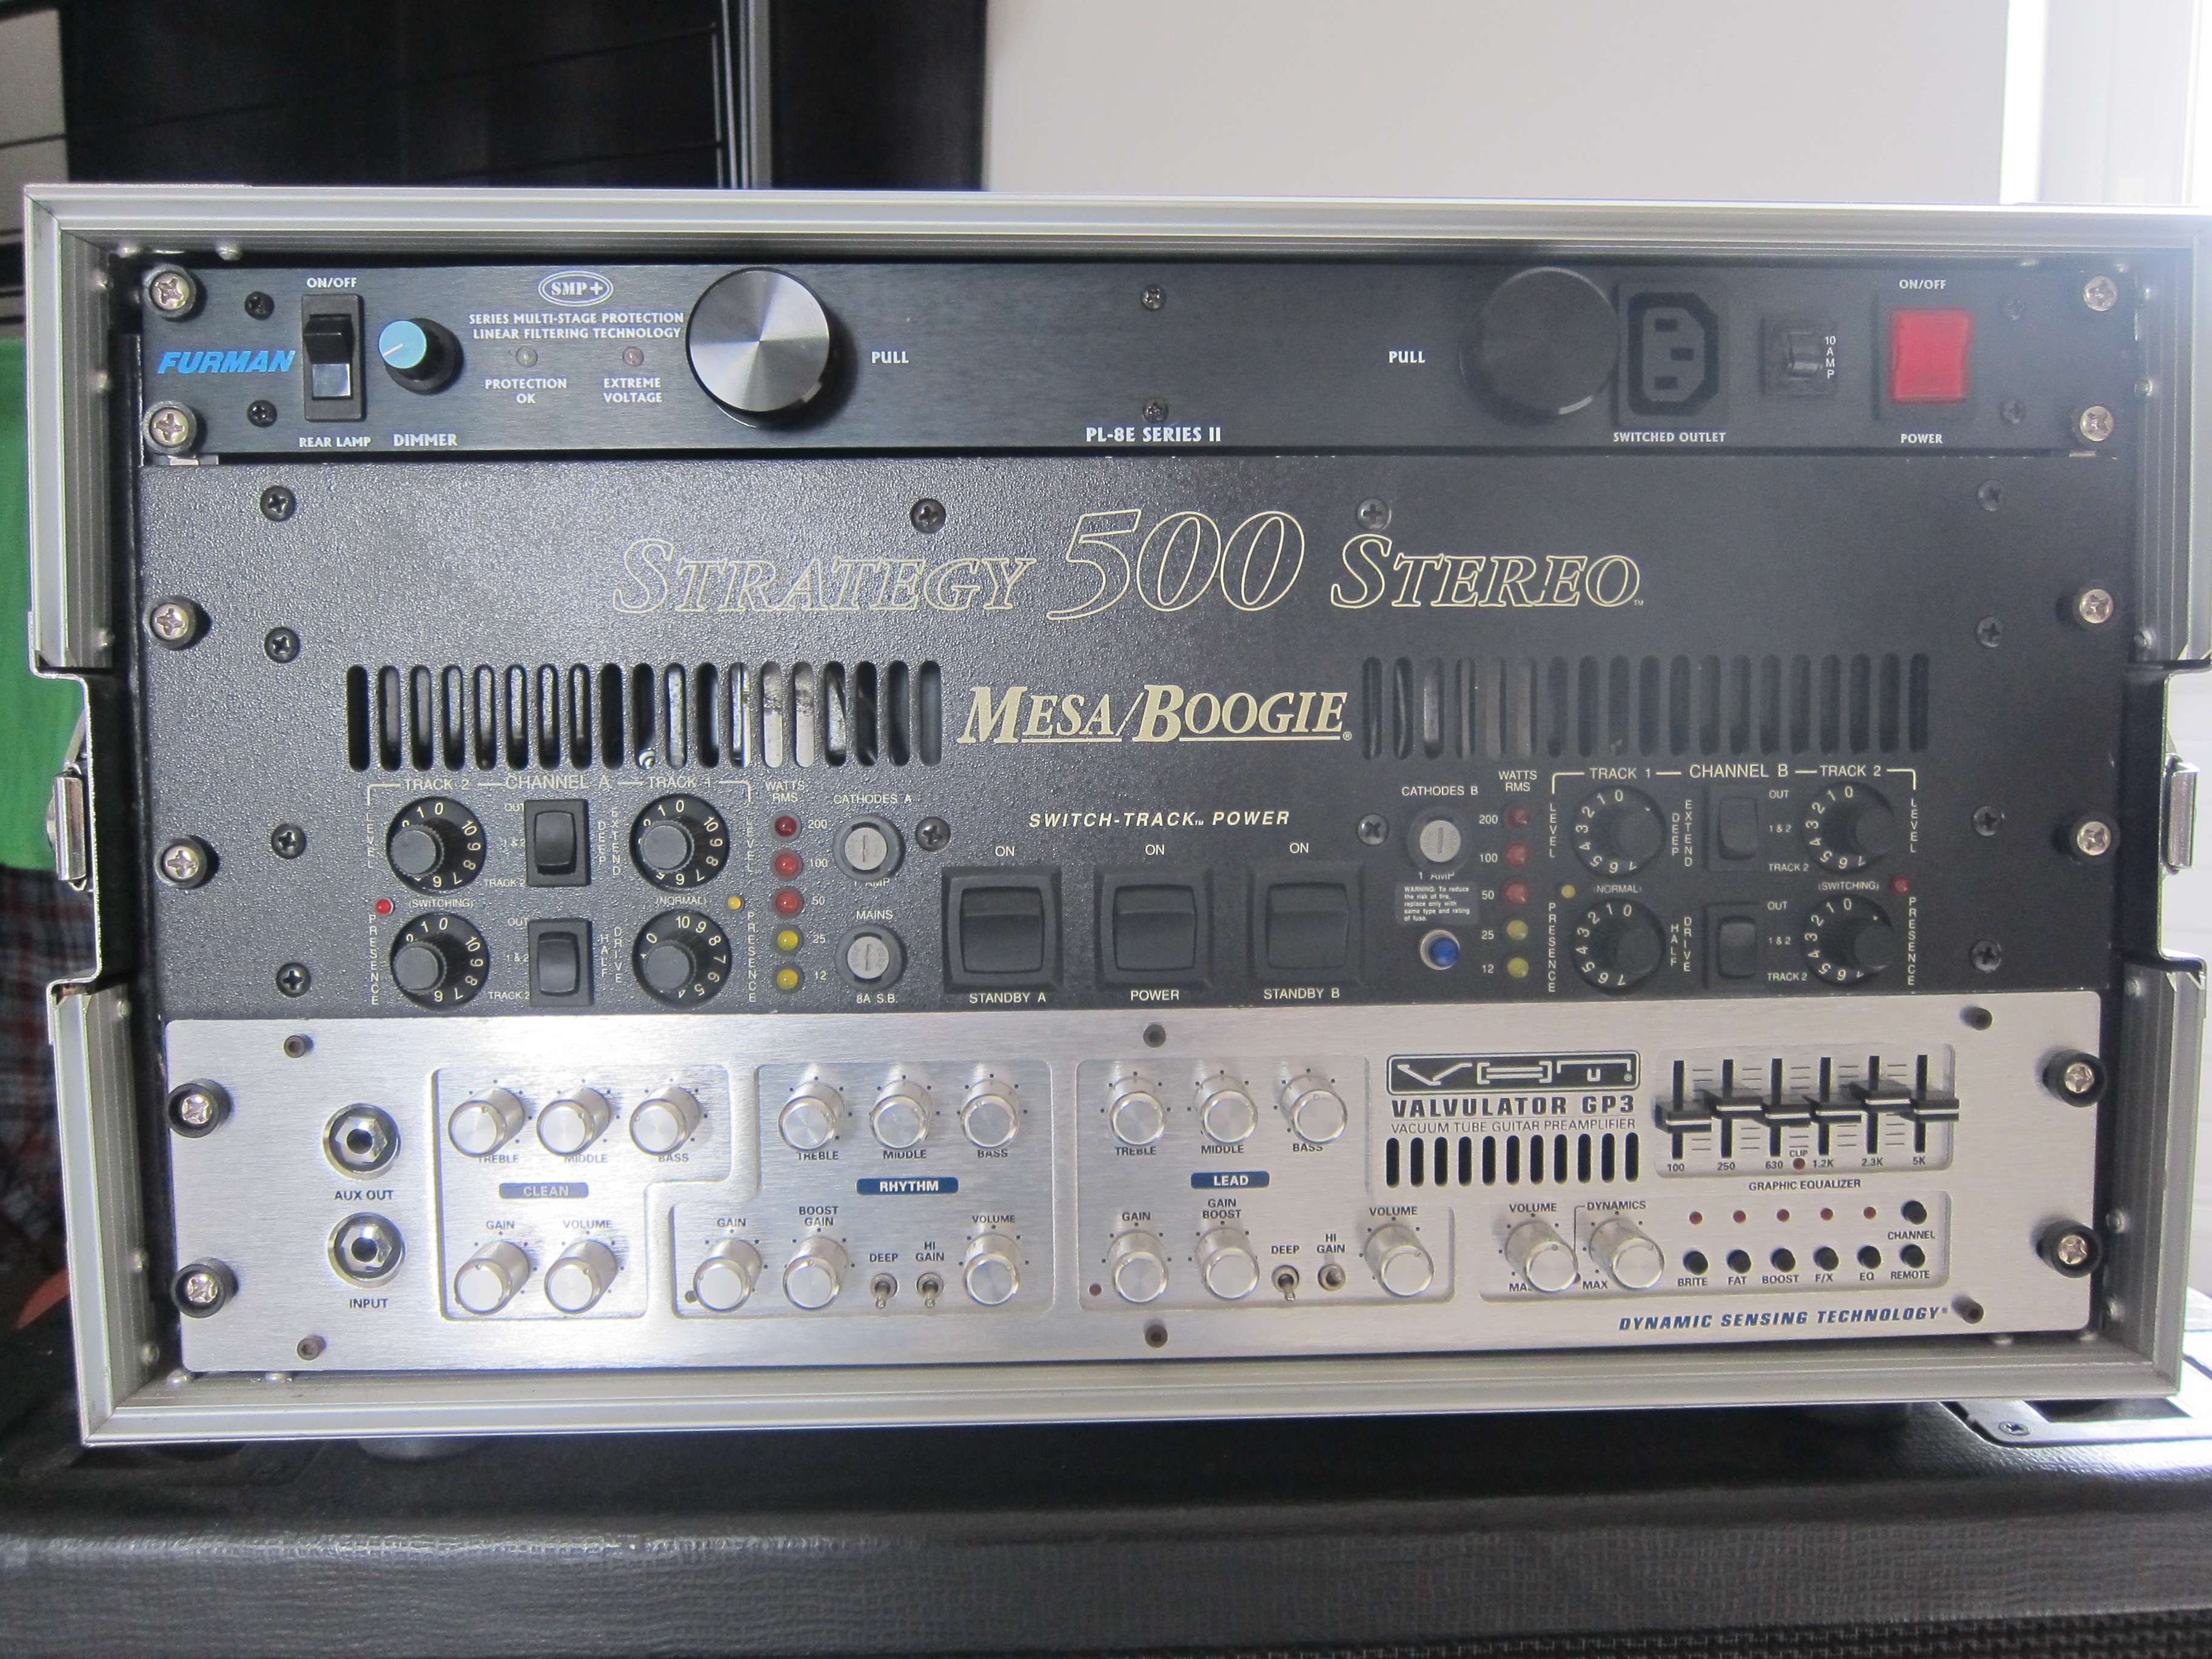 Mesa Audio Mesa Boogie Strategy 500 Stereo Image 1652550